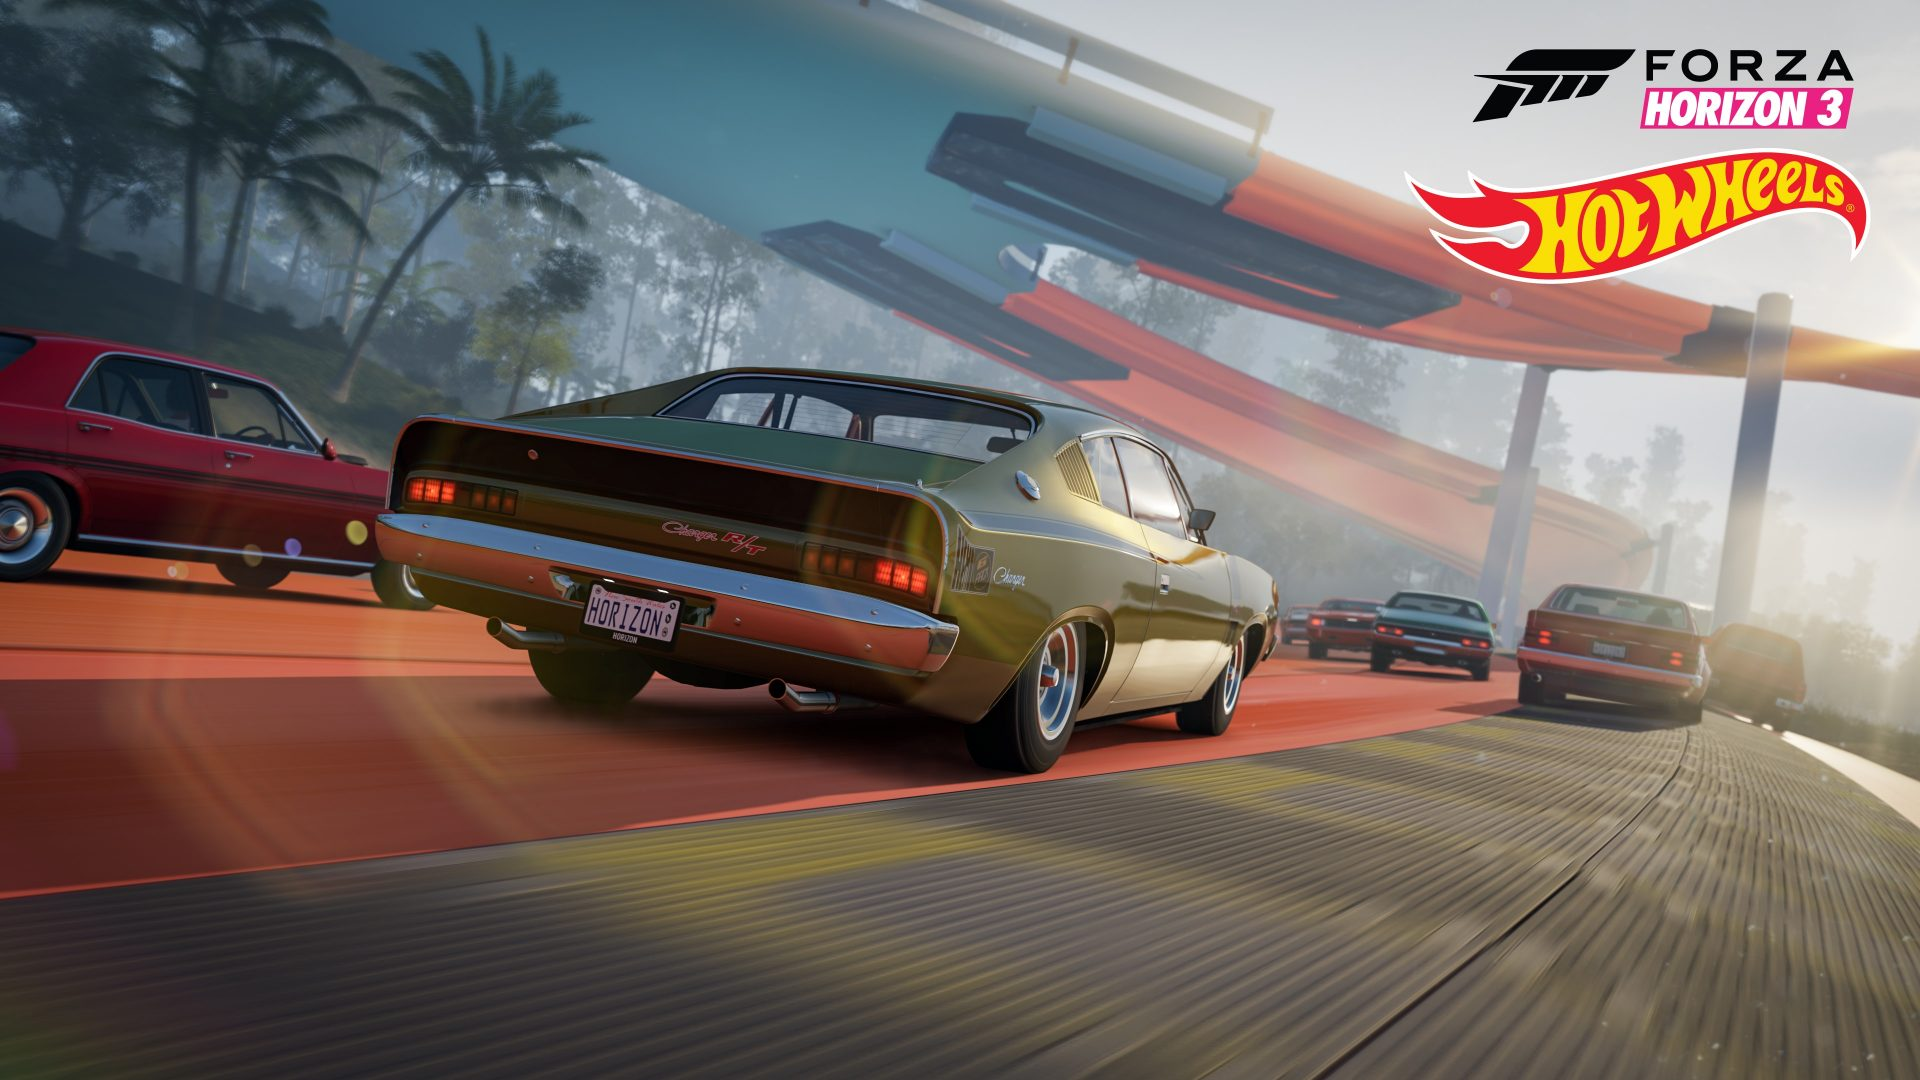 Hot Wheels Expansion Announced For Forza Horizon 3